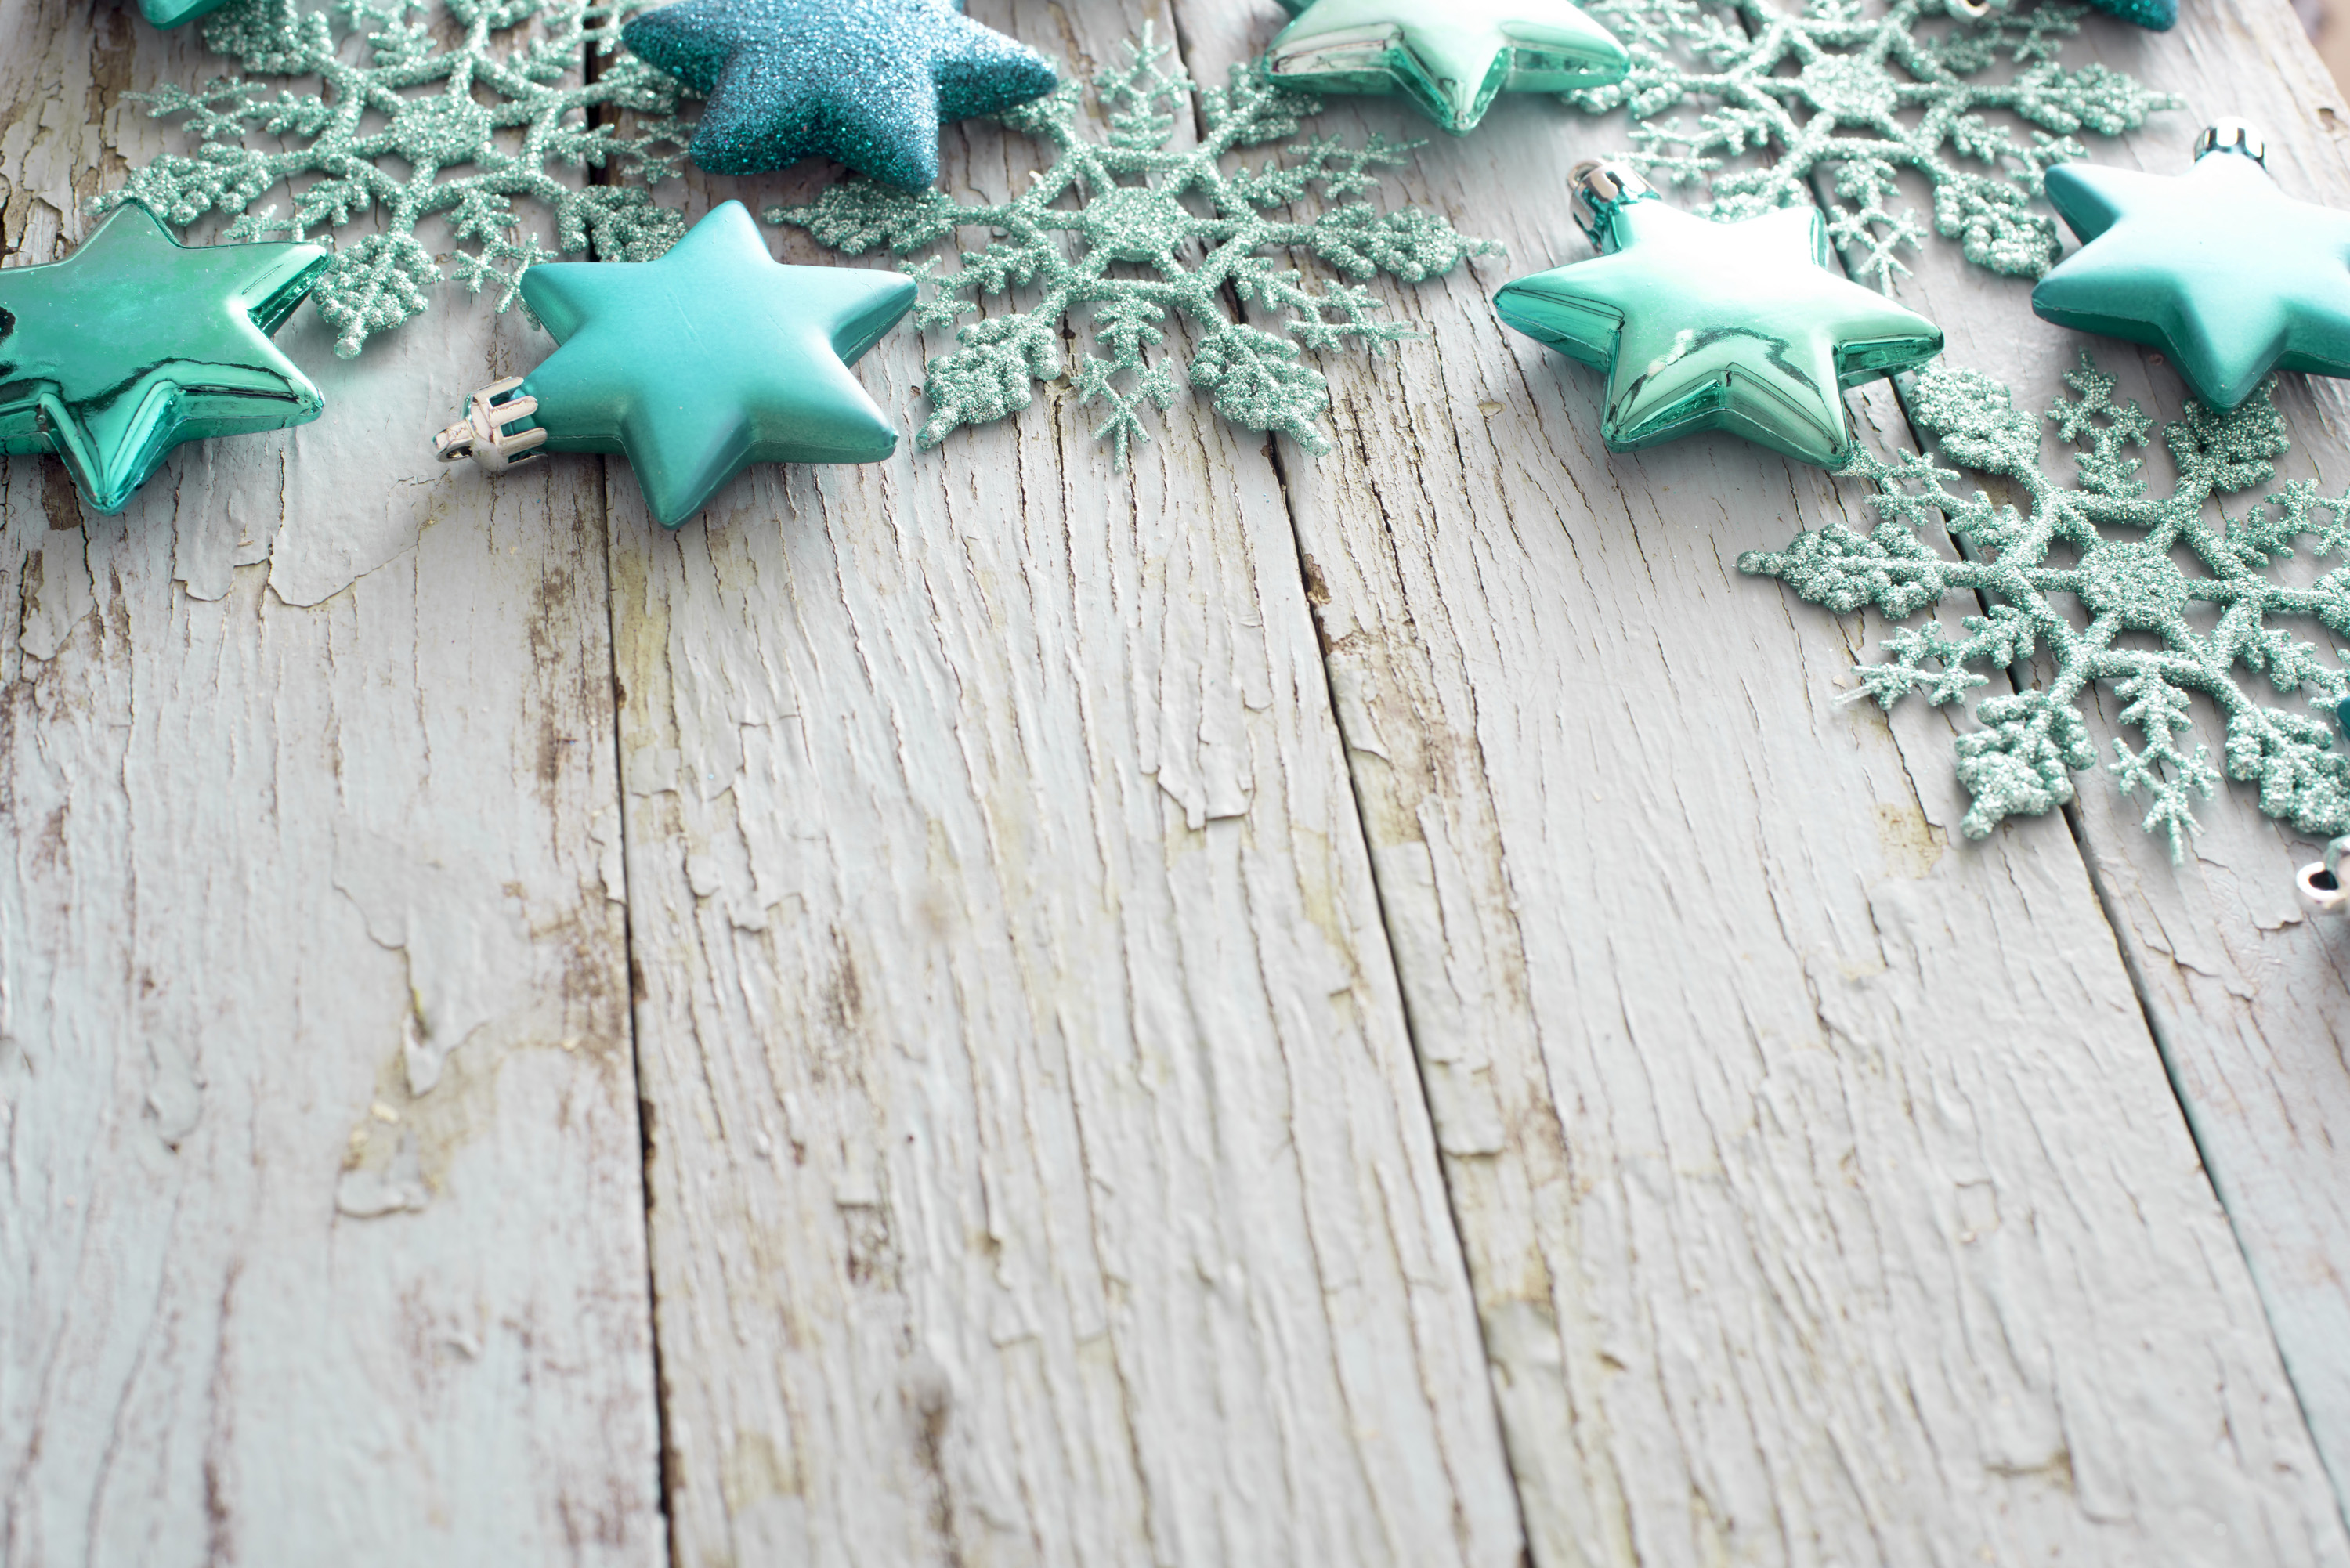 Rustic Green Christmas Border Of Delicate Snowflake And Star Ornaments On Old Weathered Textured Wood With